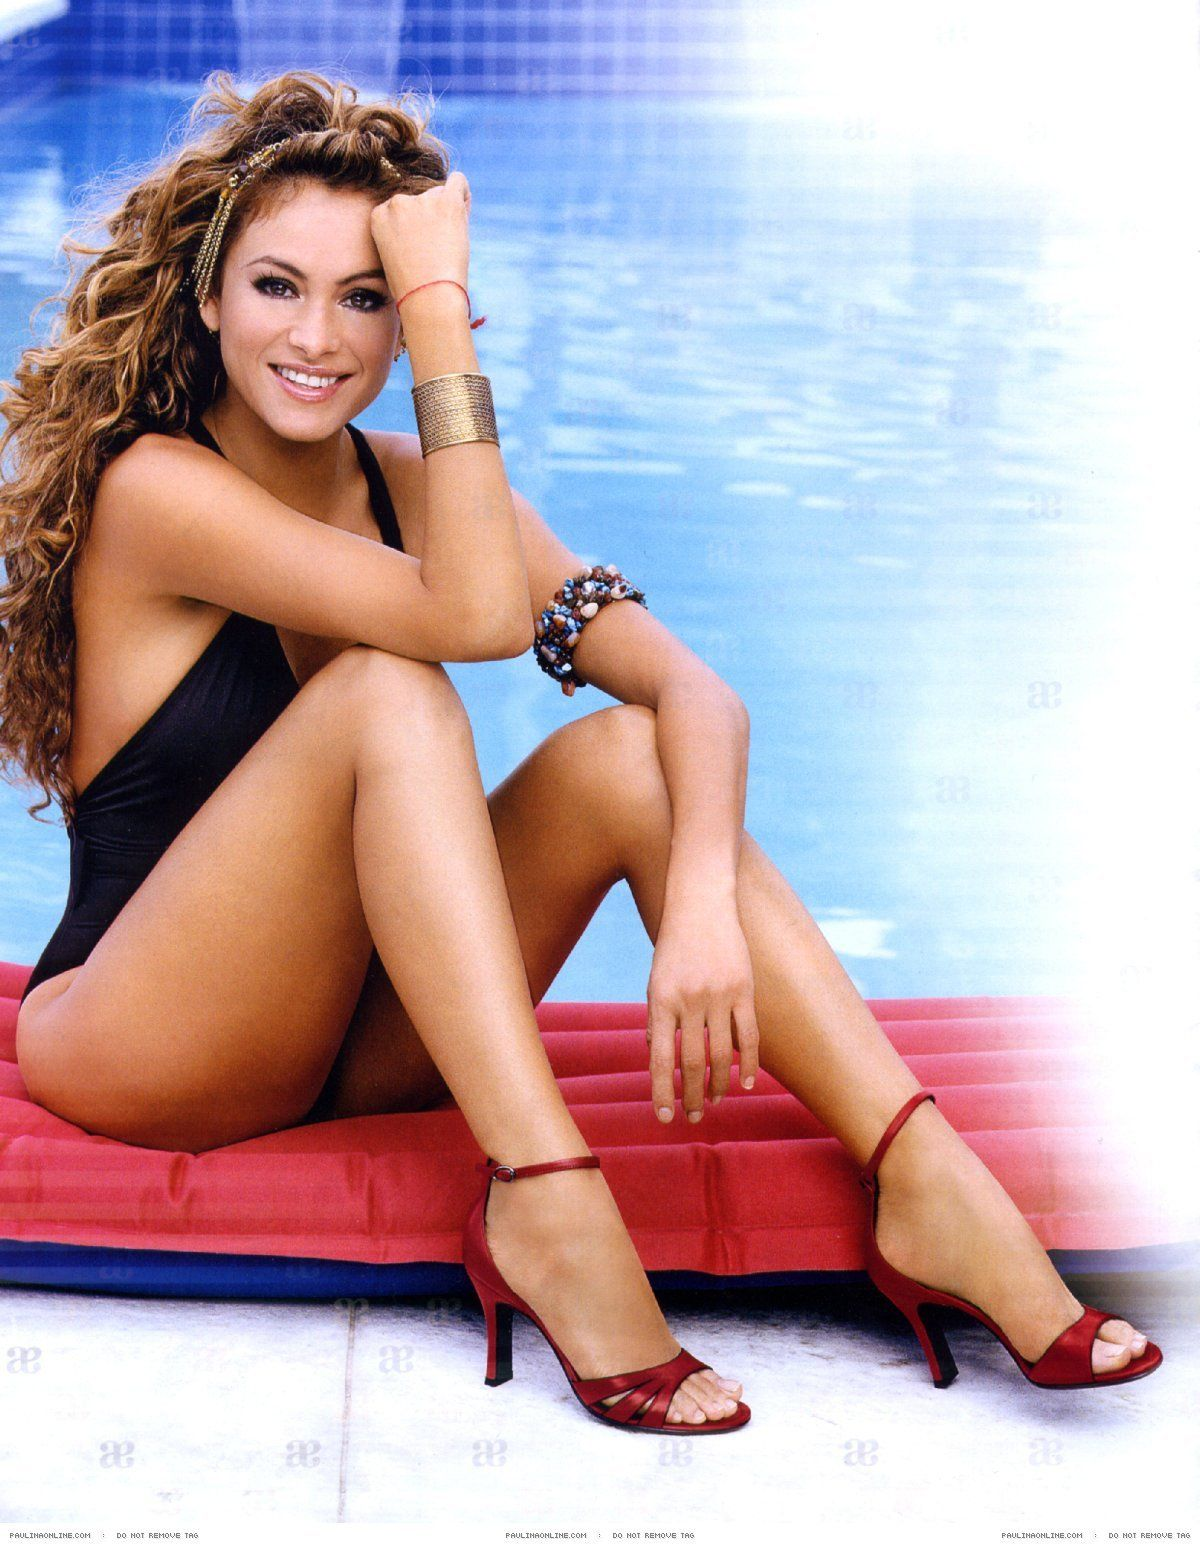 Paulina Rubio near the pool